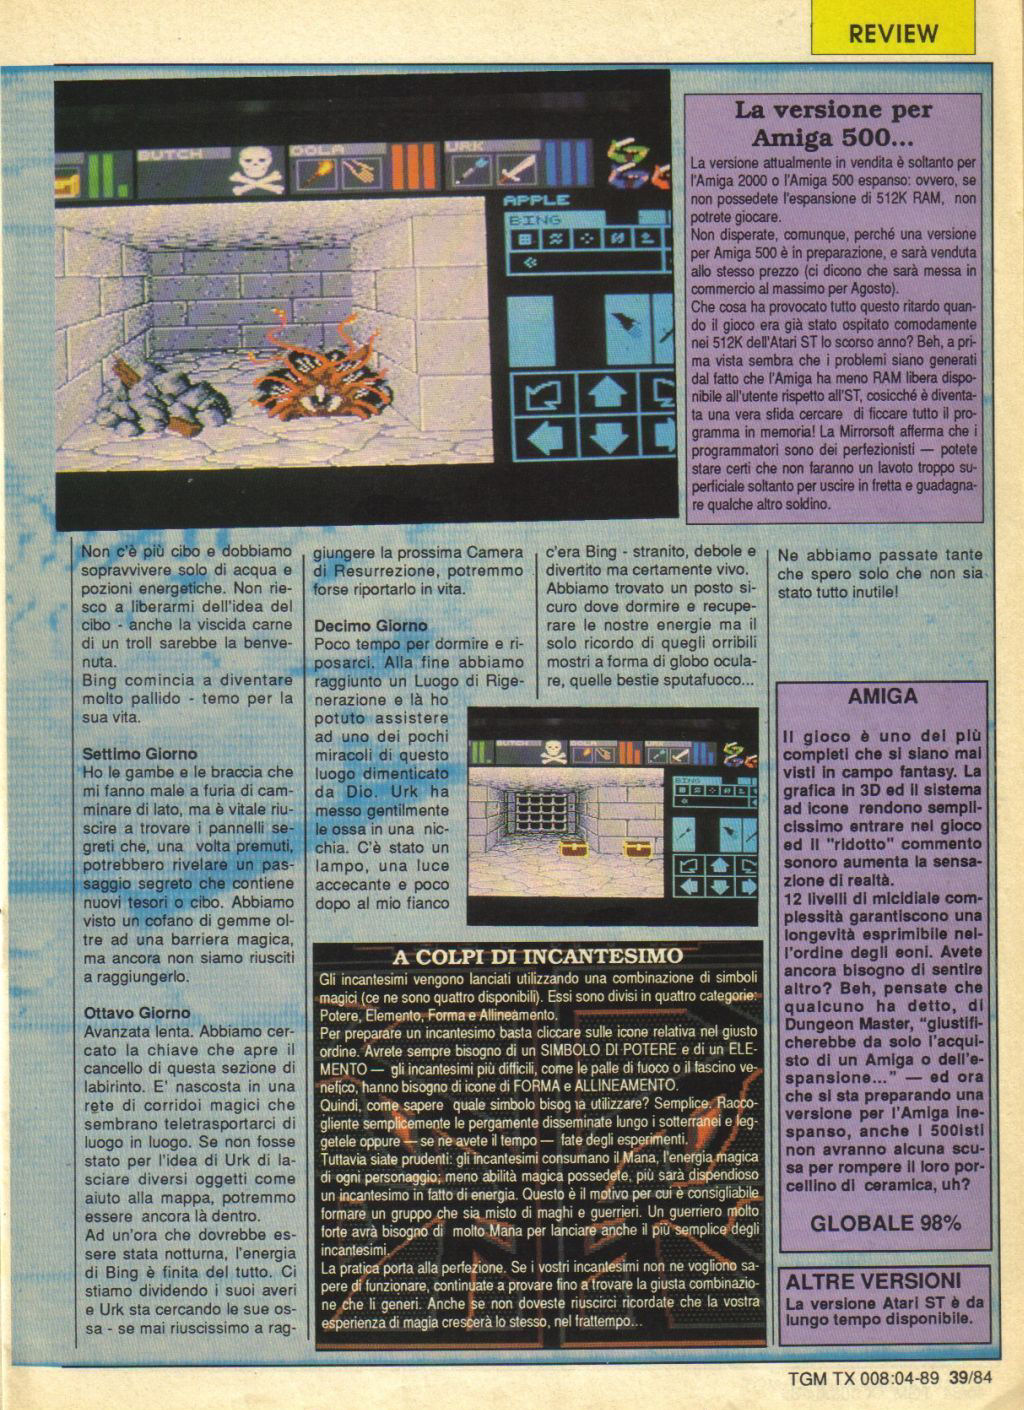 Dungeon Master for Amiga Review published in Italian magazine 'The Game Machine', Issue #8, April 1989, Page 39